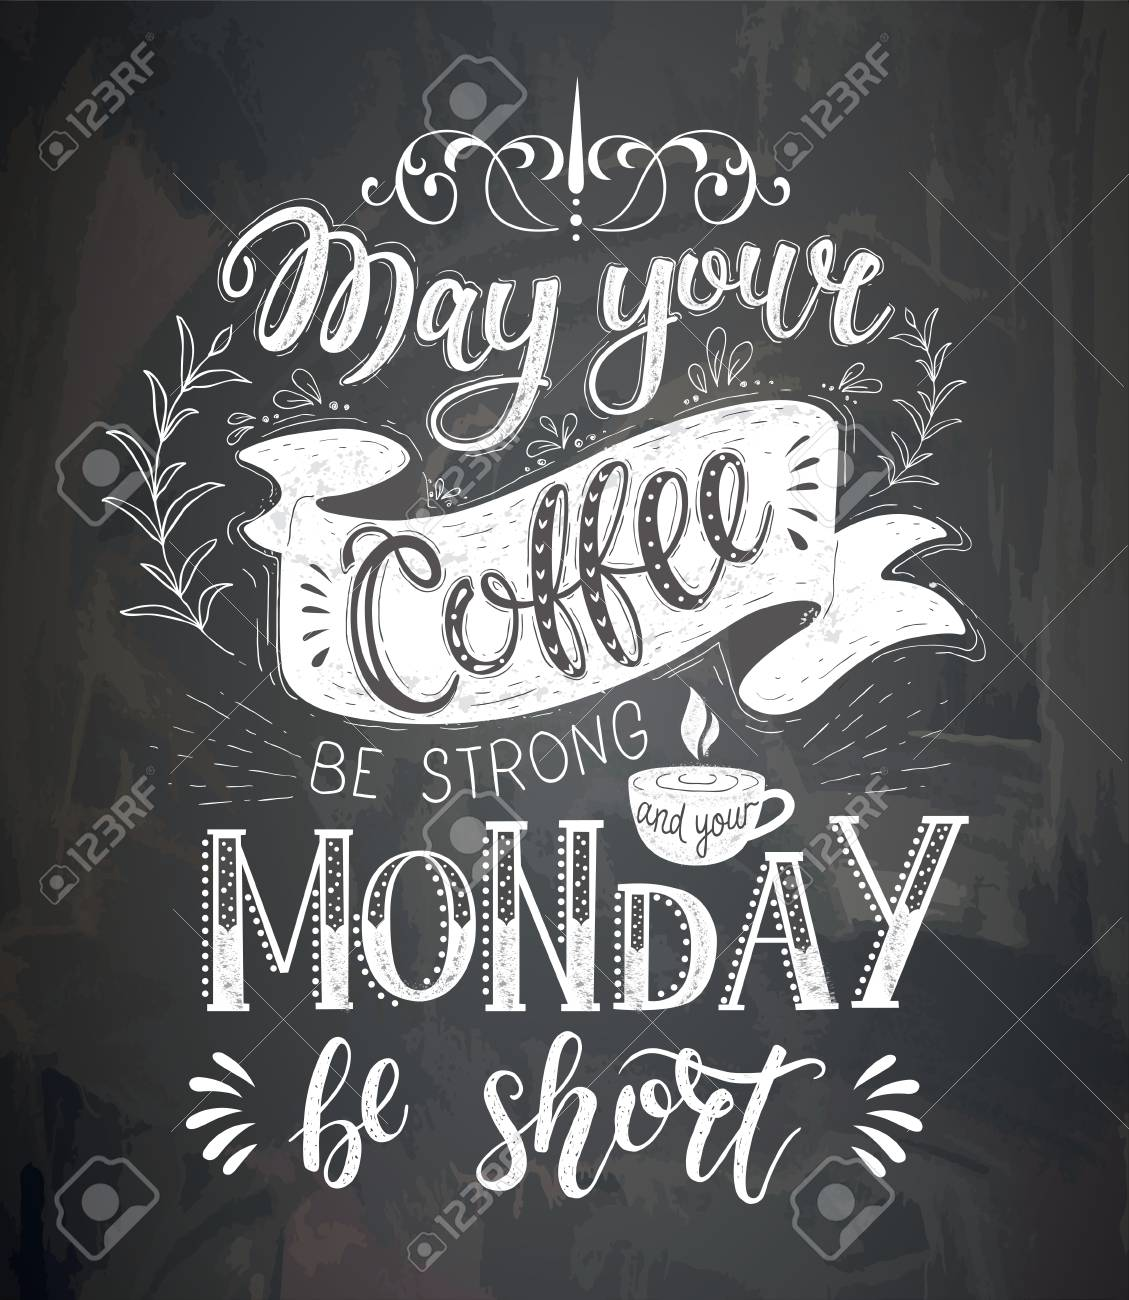 Coffee Quotes On The Chalk Board Vector Hand Drawn Lettering